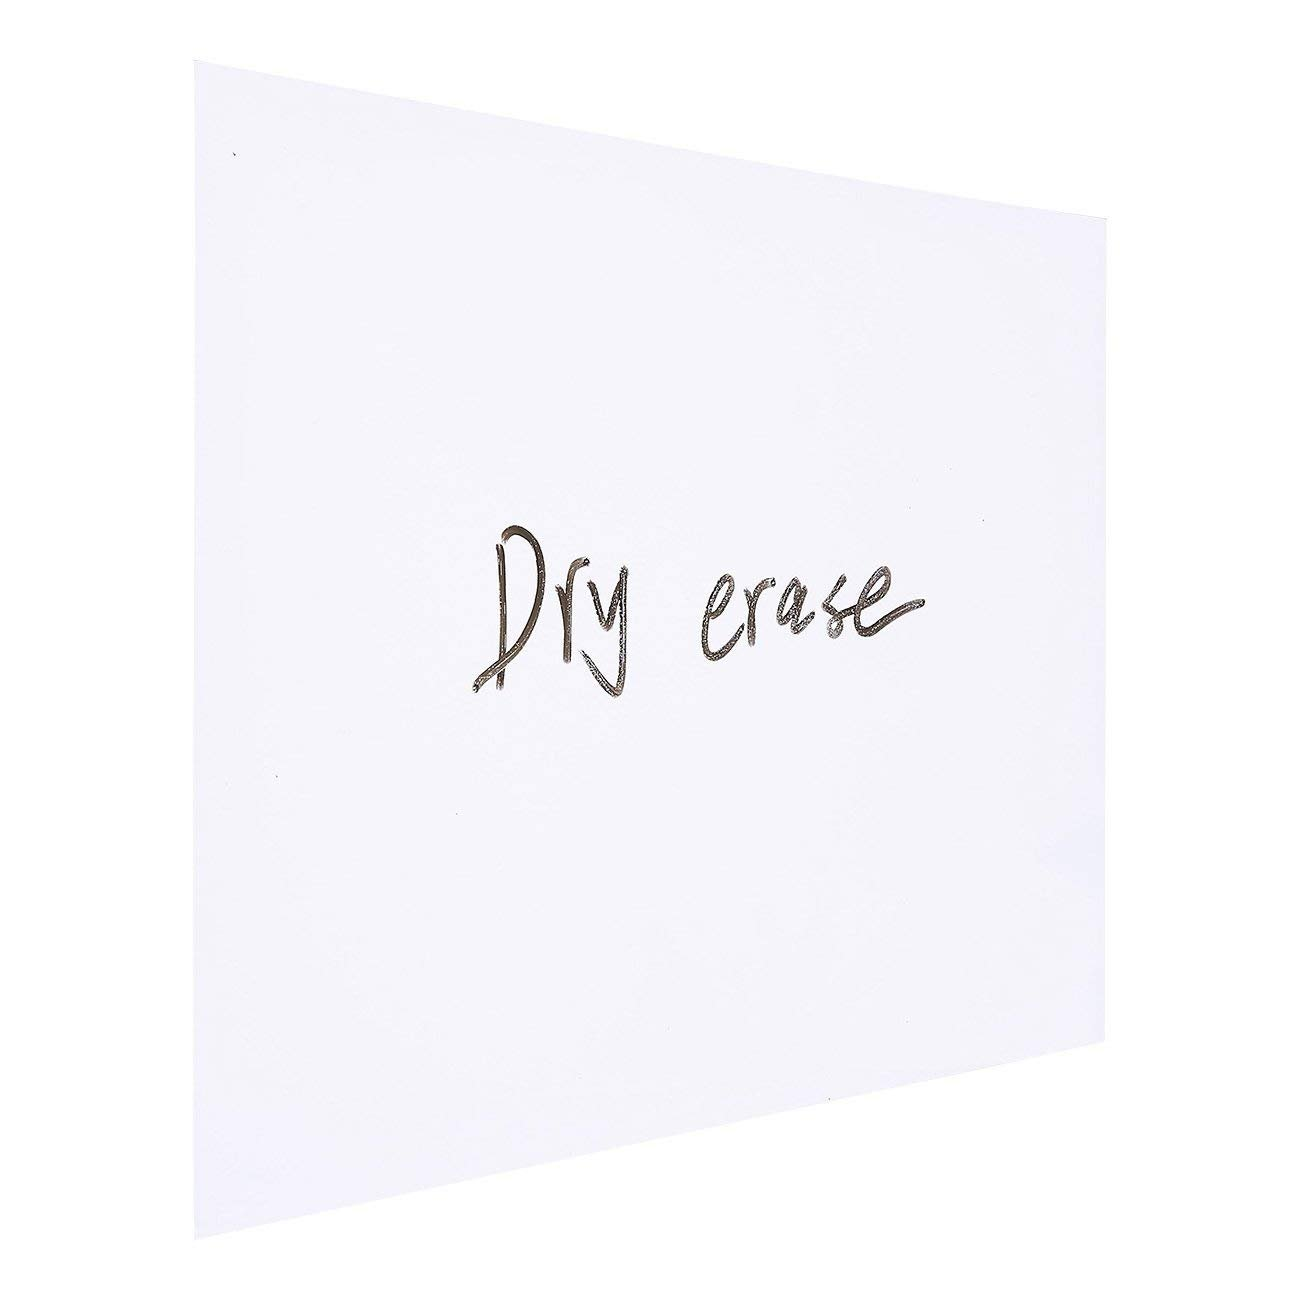 Fridge Whiteboard Sheet White Magnetic Dry Erase Sheet 12-Pack Whiteboard Sheet for Refrigerator 4 x 4 Inches Kitchen Dry Erase Board with Magnets Mini